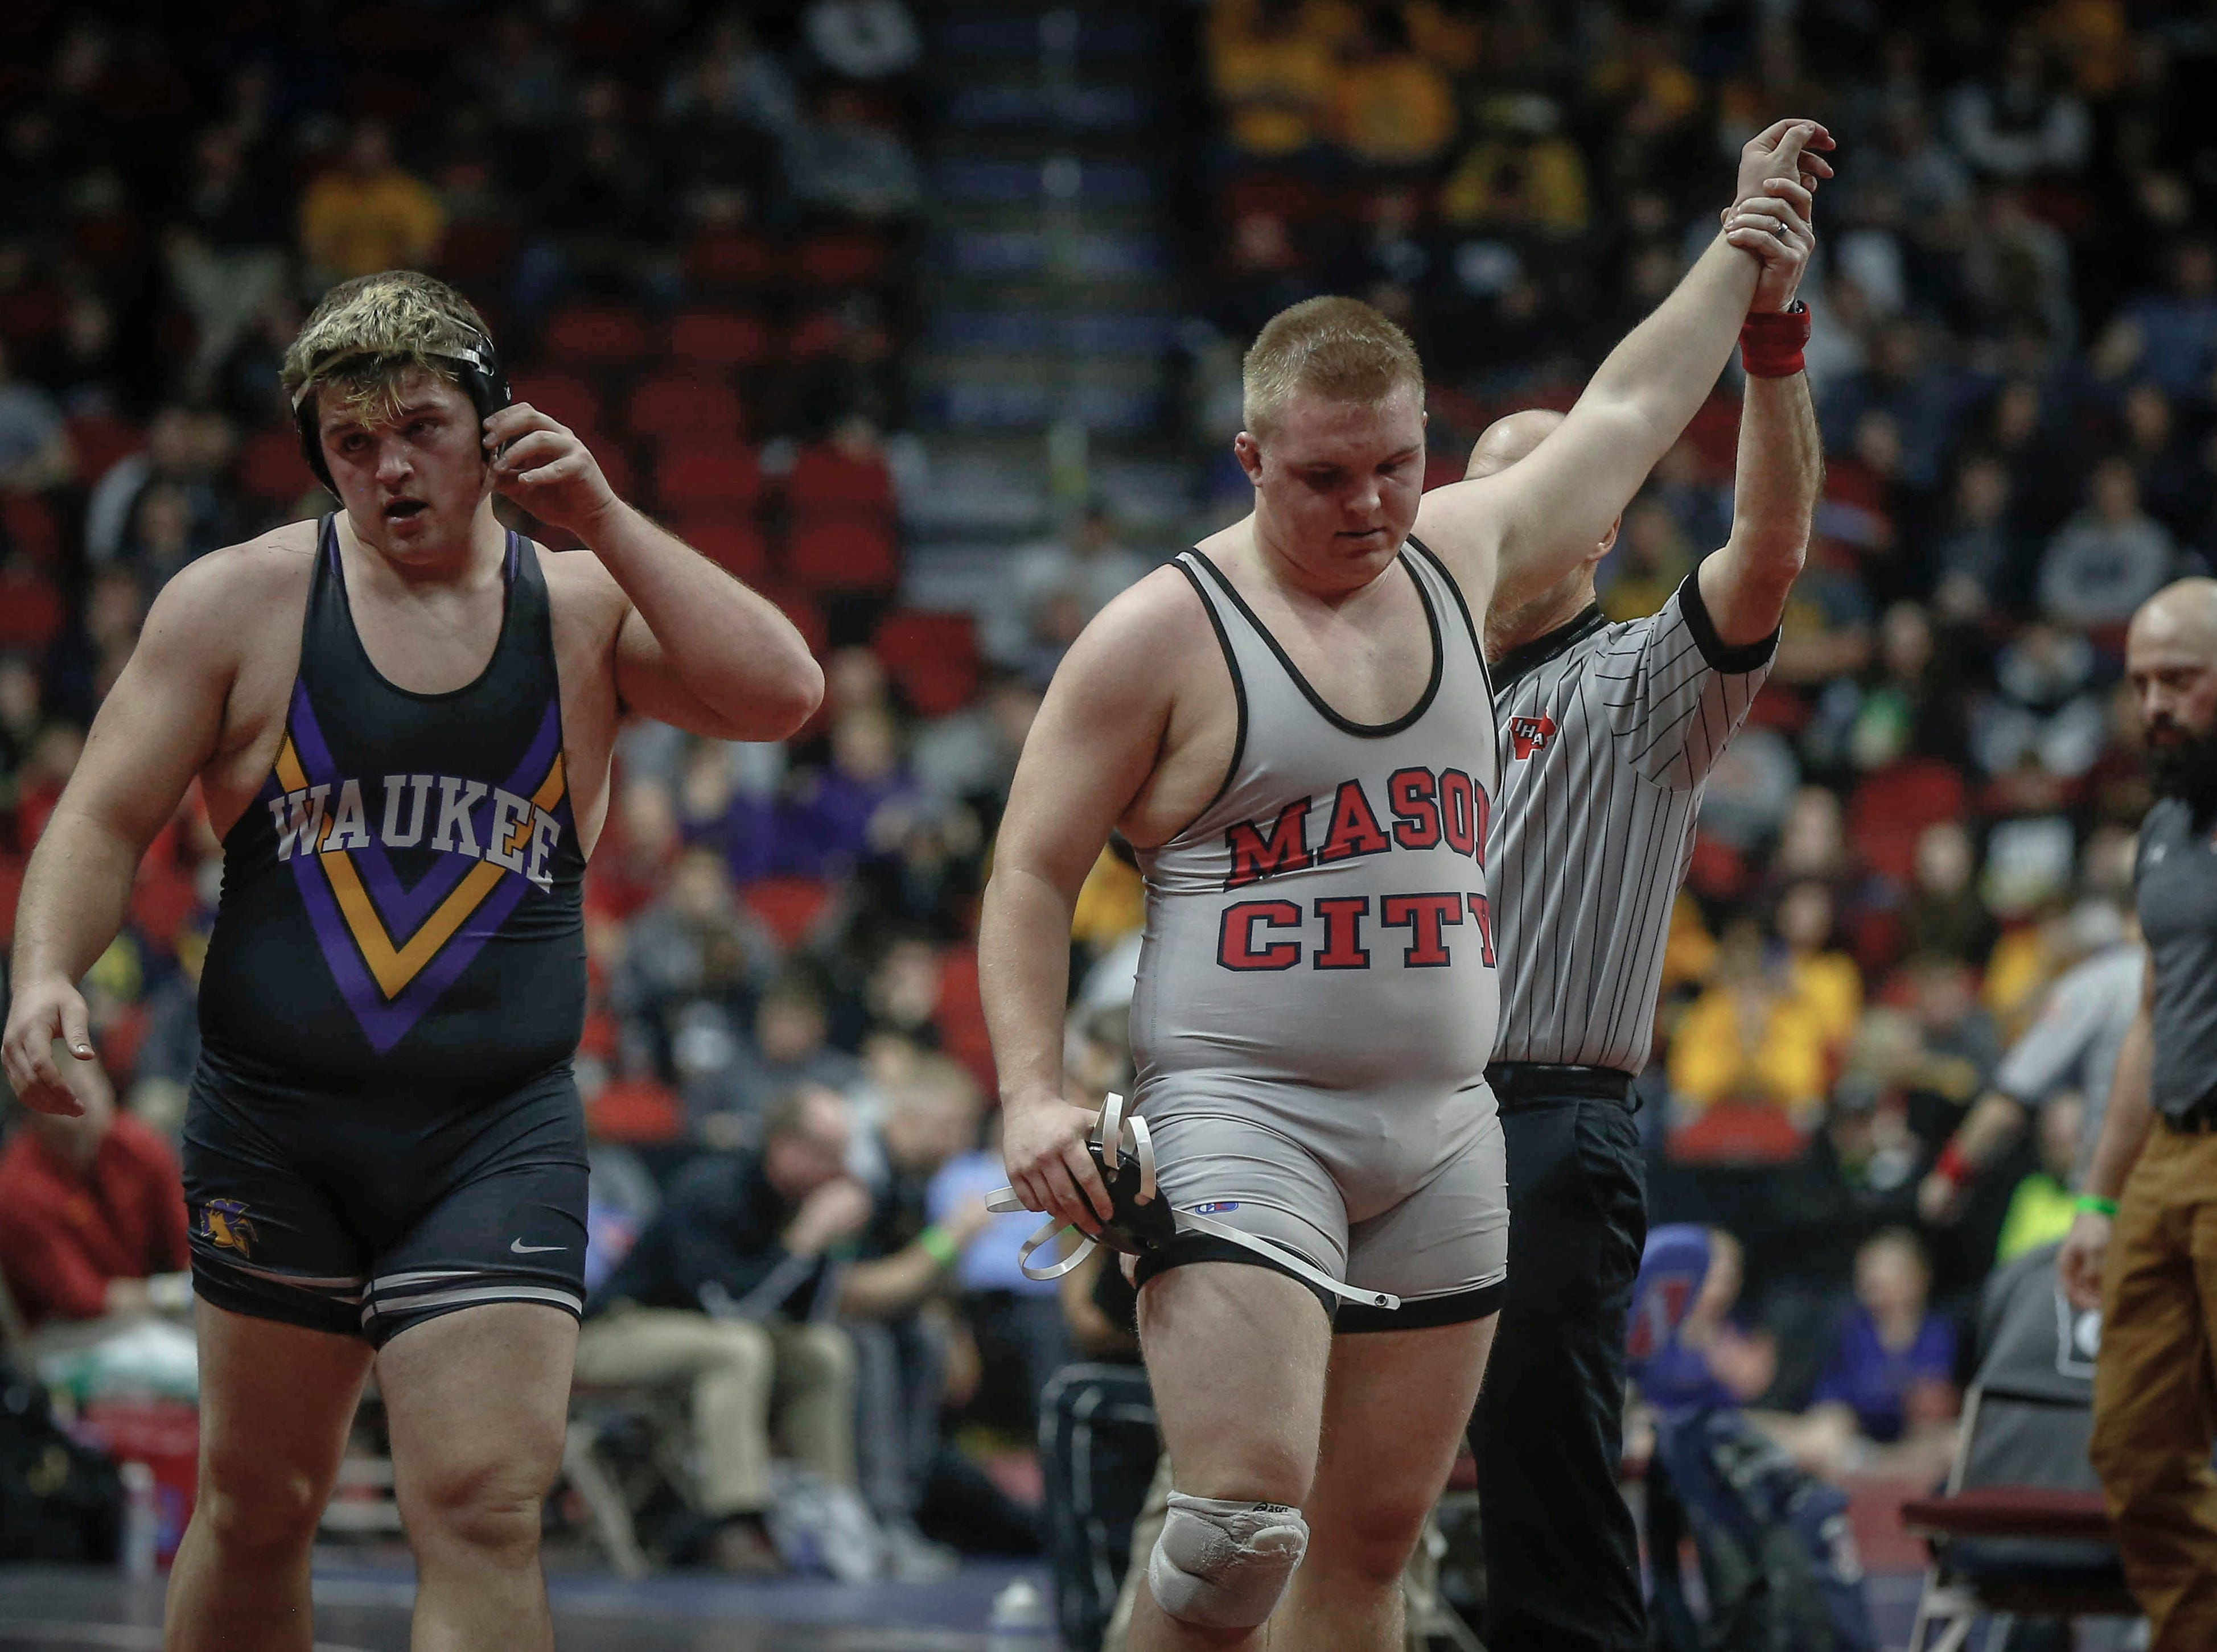 Mason City senior Troy Monahan beat Waukee junior Conner Arndt in overtime in their match at 285 pounds during the state wrestling quarterfinals on Friday, Feb. 15, 2019, at Wells Fargo Arena in Des Moines.